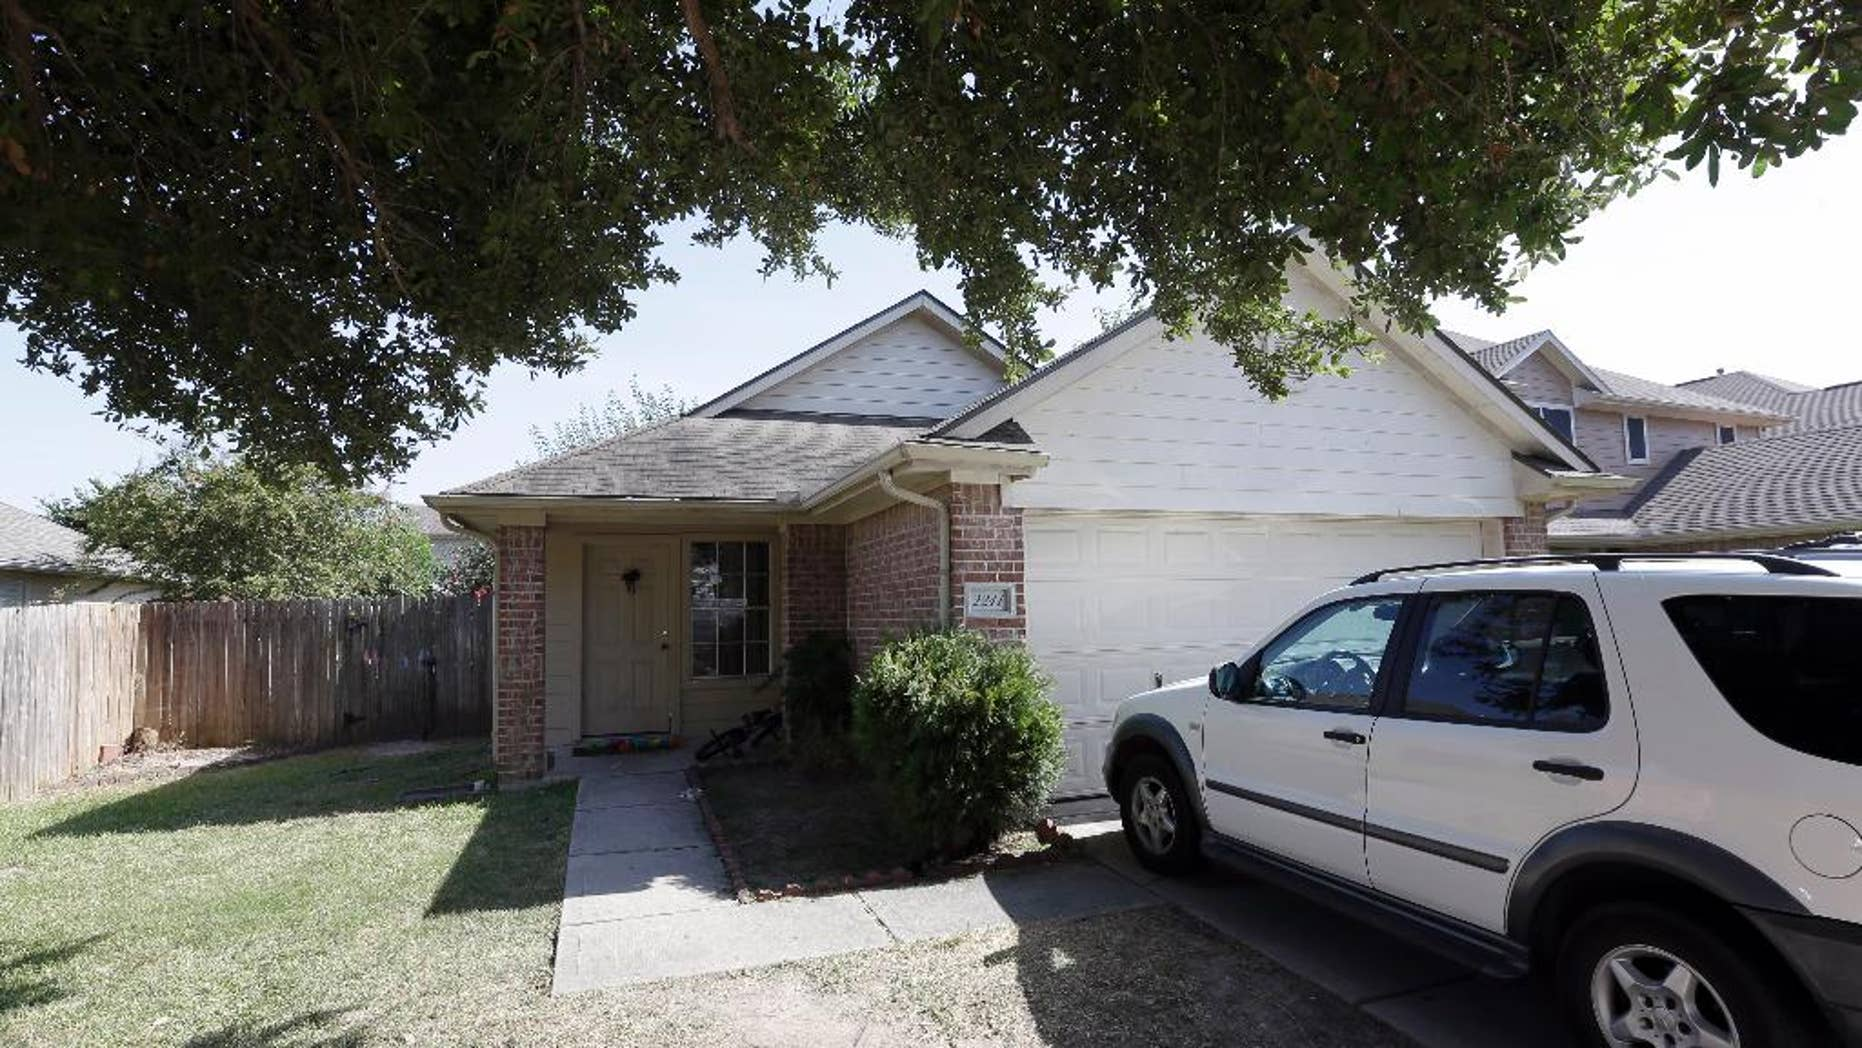 A house is shown, Sunday, Aug. 9, 2015, where eight people were killed on Saturday in Houston. A family of six children and two parents were handcuffed and fatally shot in the head at a Houston home by a man with a violent criminal history who had previously been in a relationship with the mother and had a dispute with her, authorities said Sunday. David Conley, 48, was charged with capital murder in the deaths. (AP Photo/David J. Phillip)